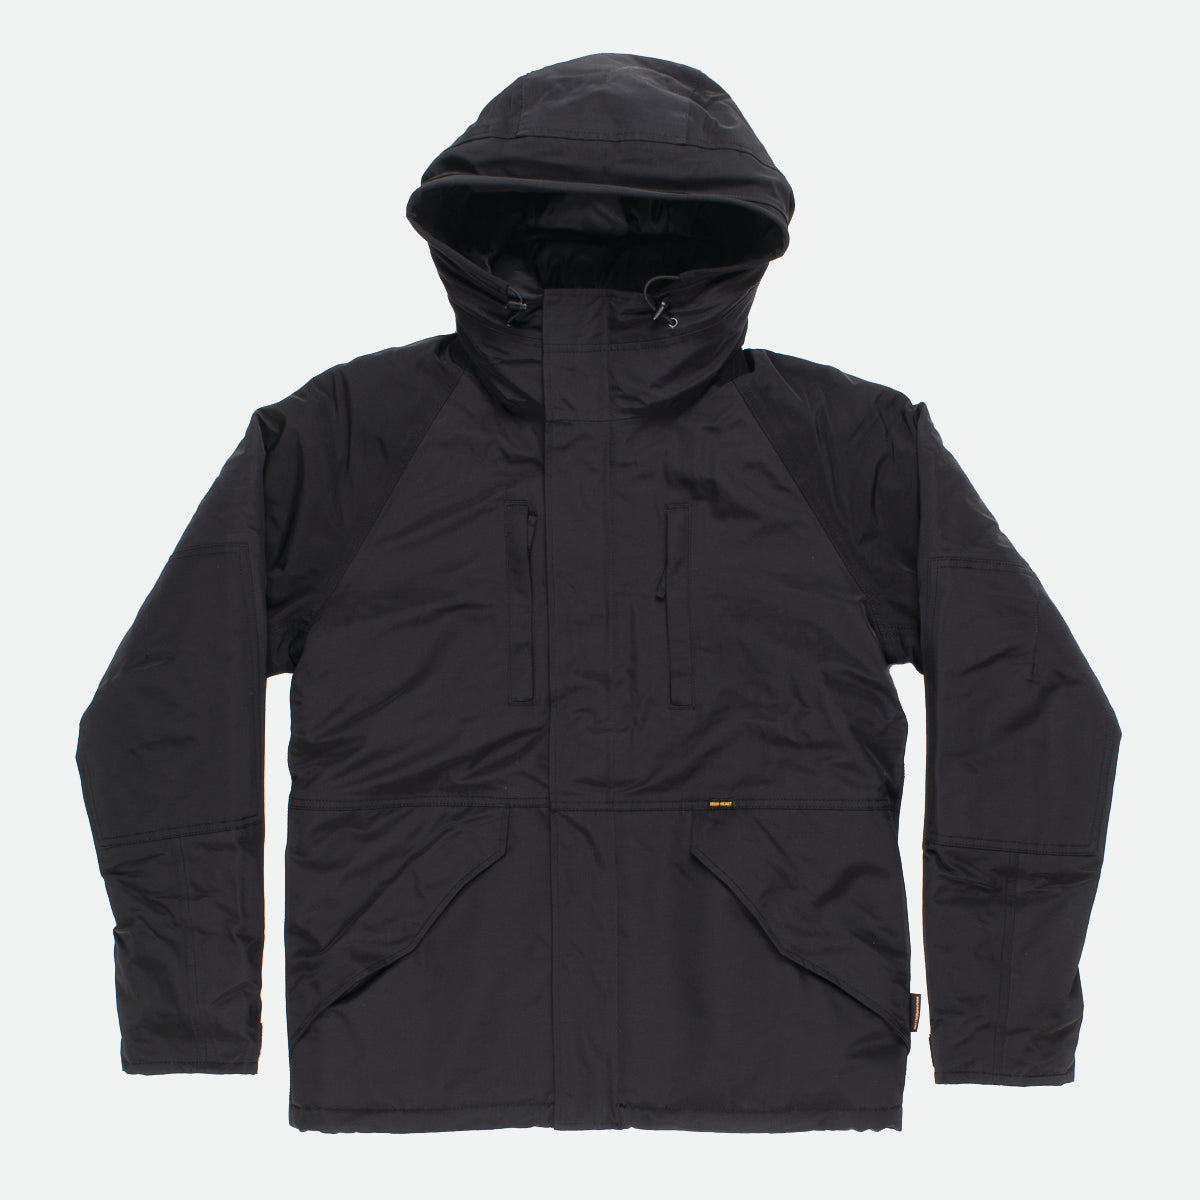 IHJ-75 - PrimaLoft® Mountain Parka Black